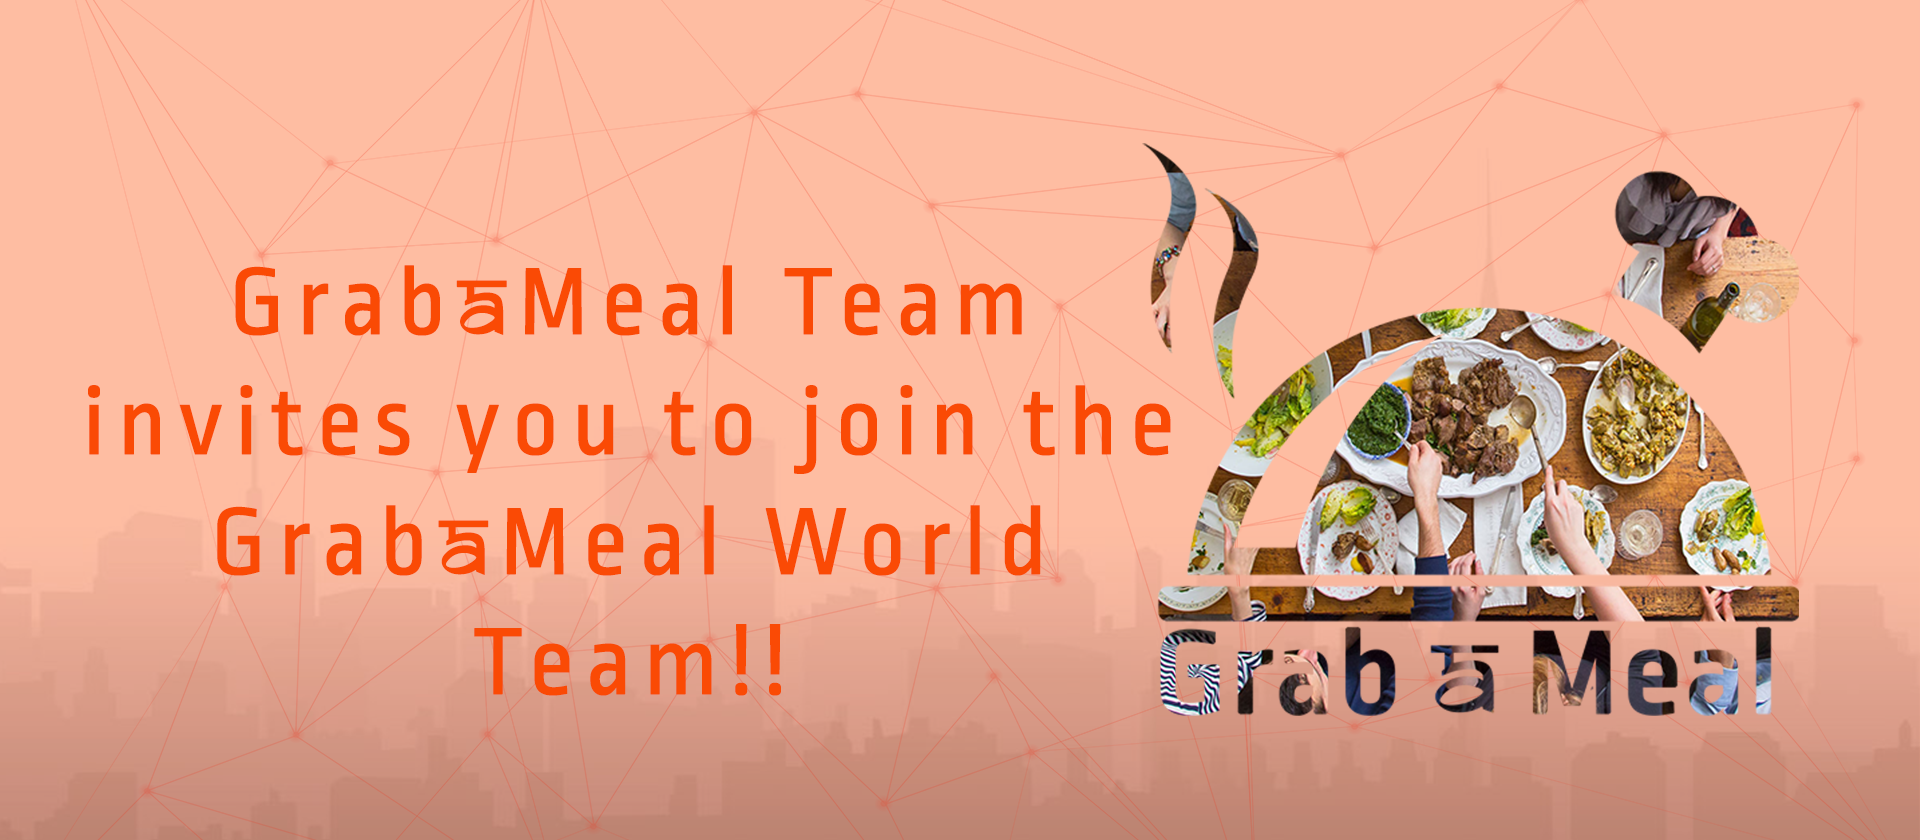 GrabAMeal invites you to Join our team as an Adviser or Team Member!!